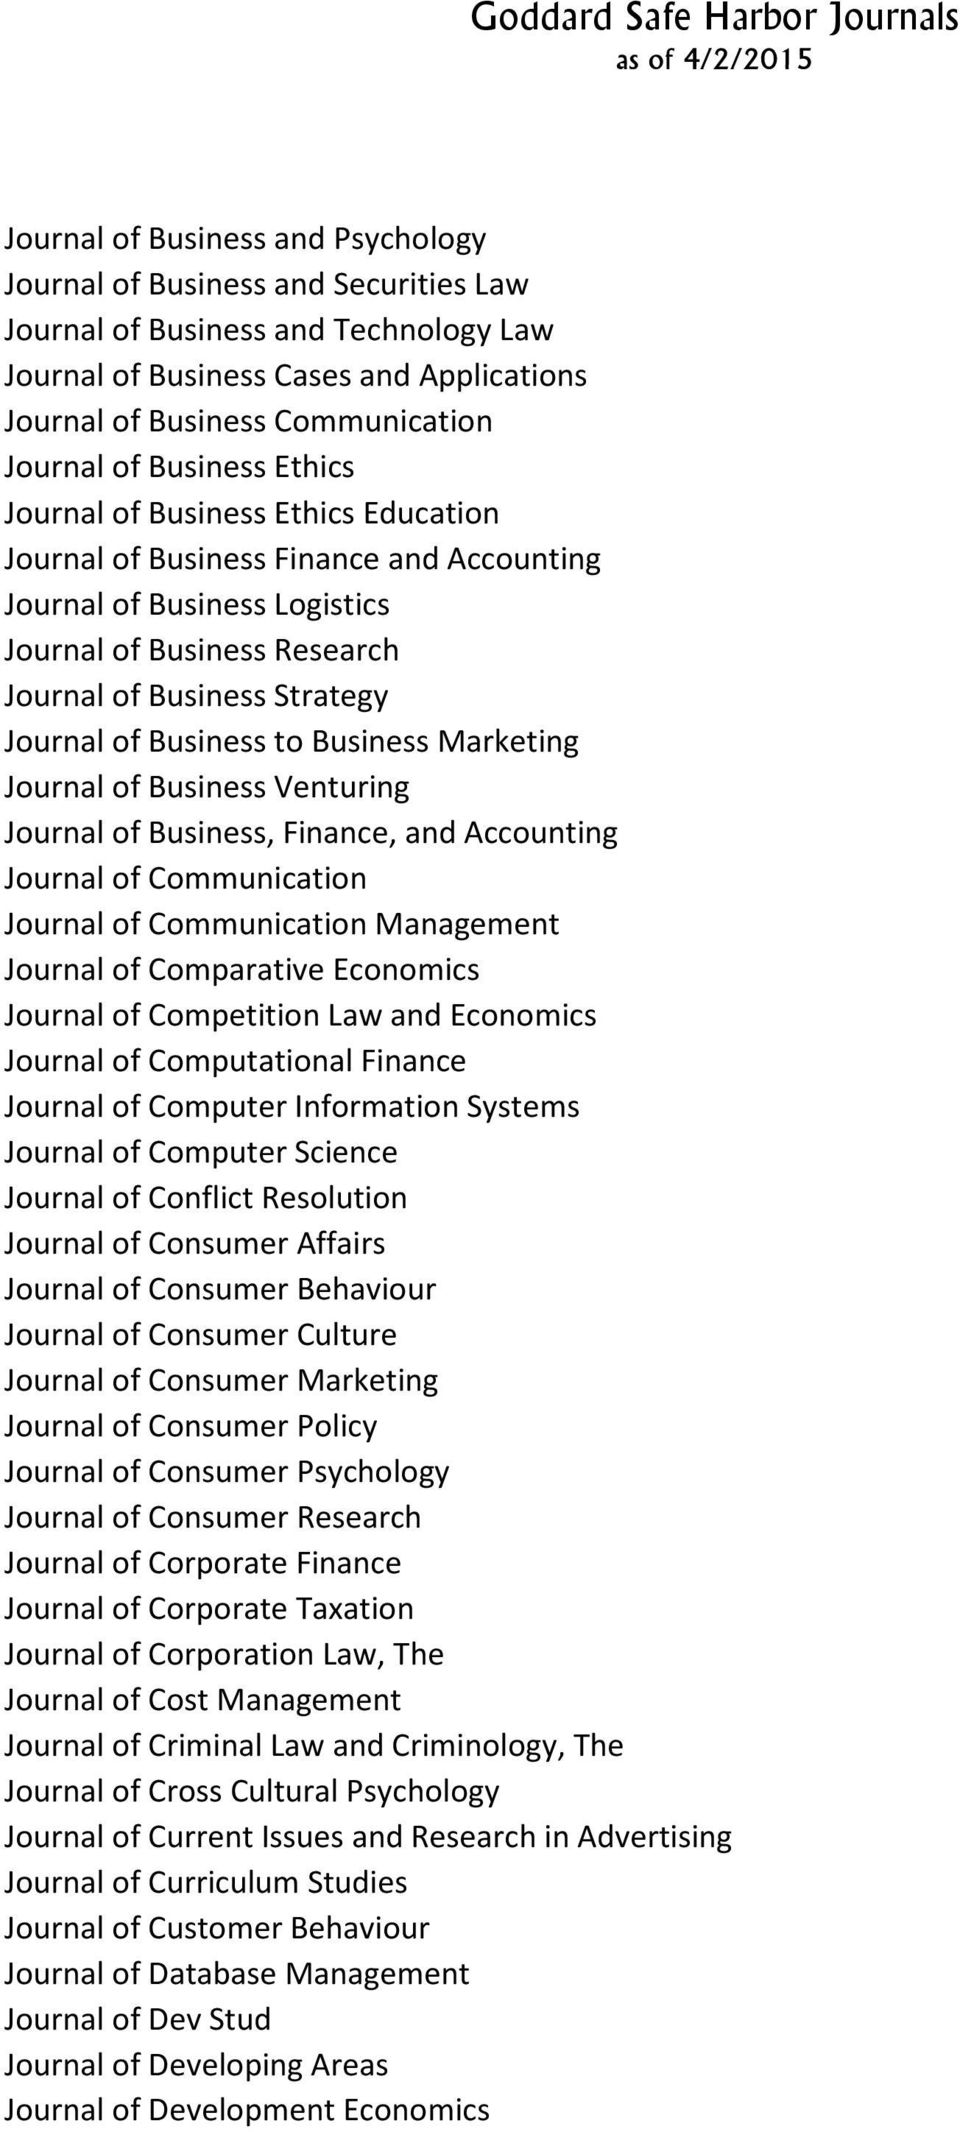 Business to Business Marketing Journal of Business Venturing Journal of Business, Finance, and Accounting Journal of Communication Journal of Communication Management Journal of Comparative Economics